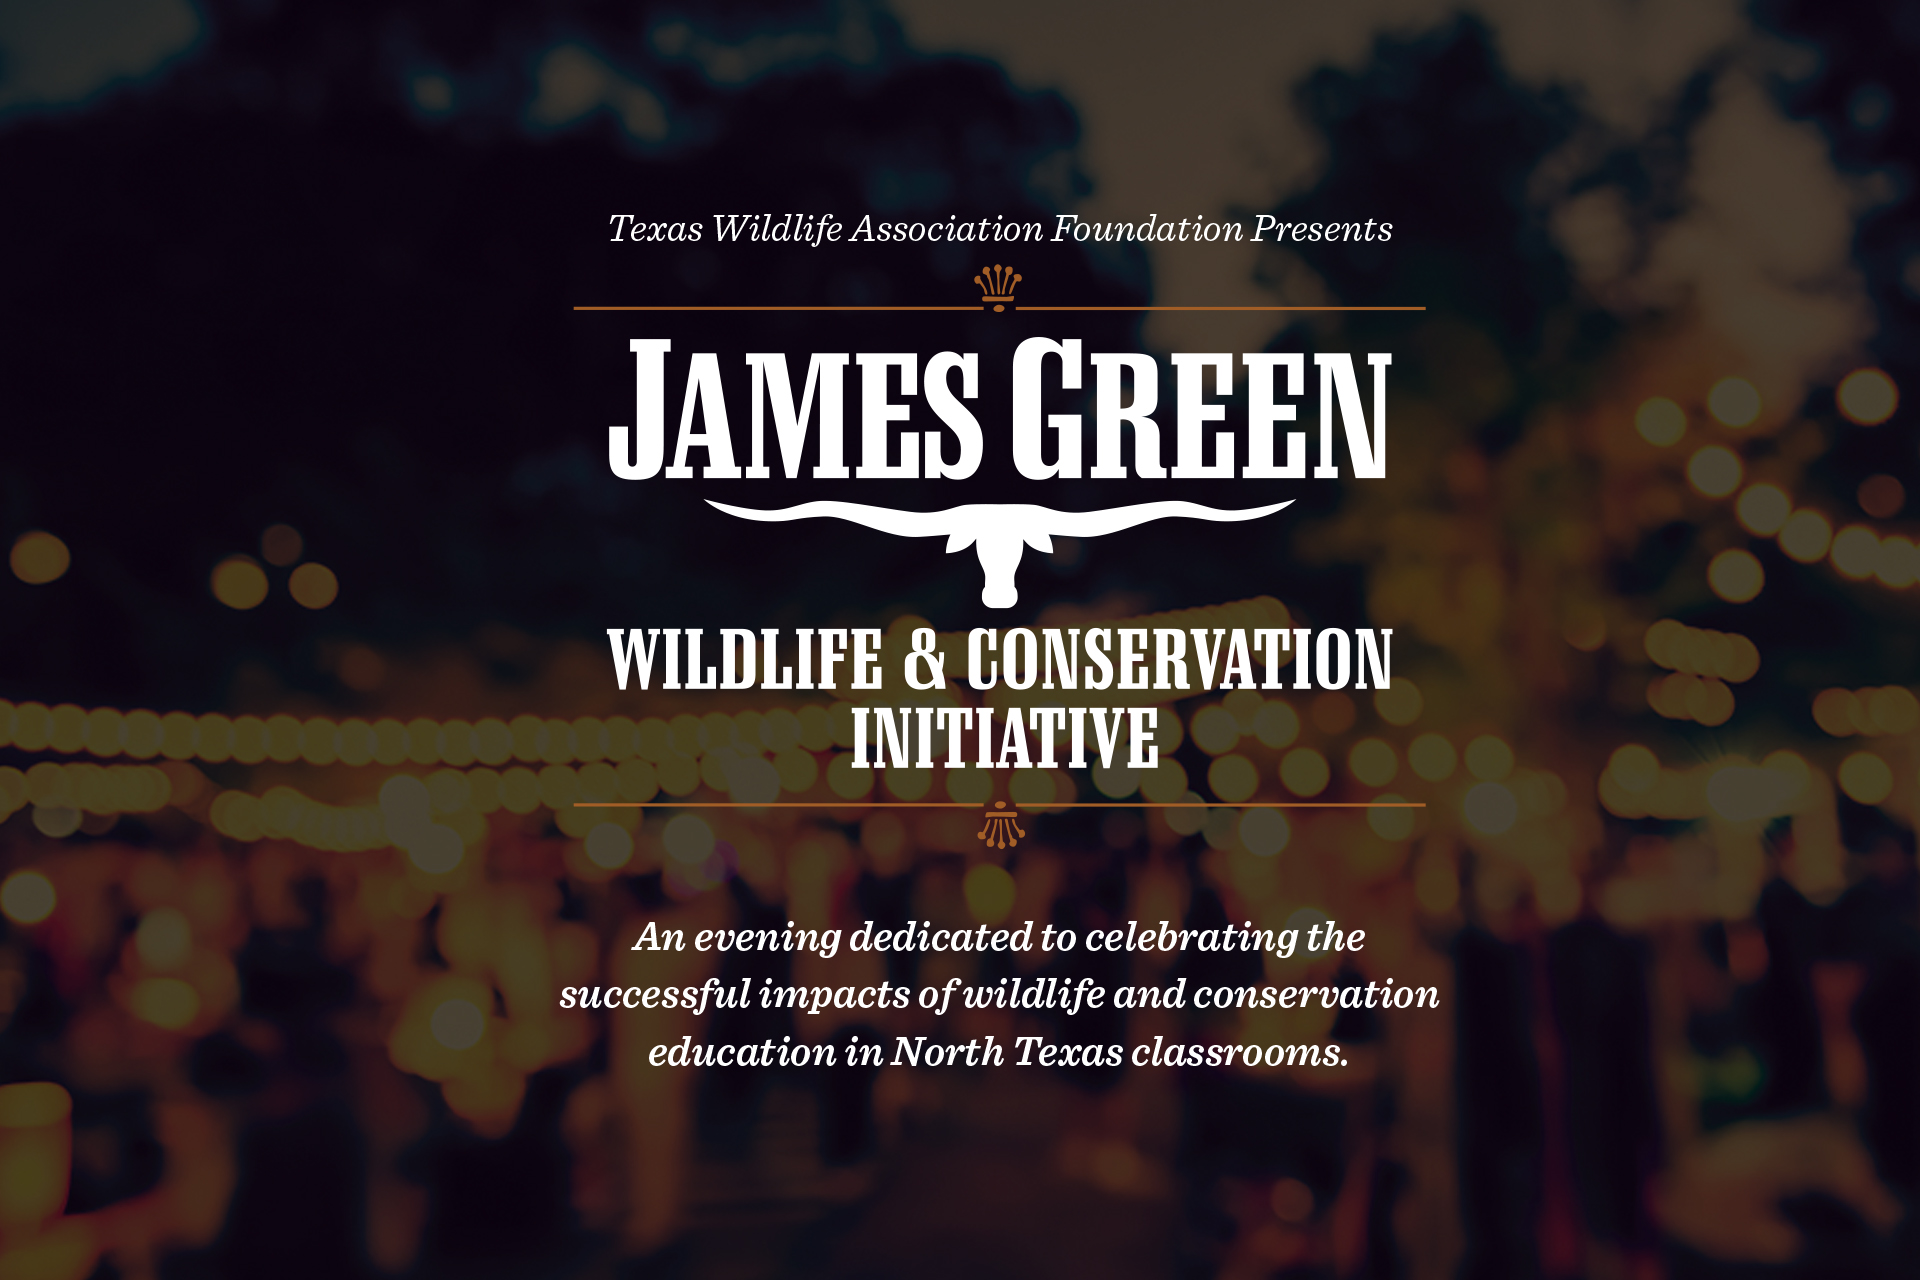 James Green Wildlife & Conservation Initiative